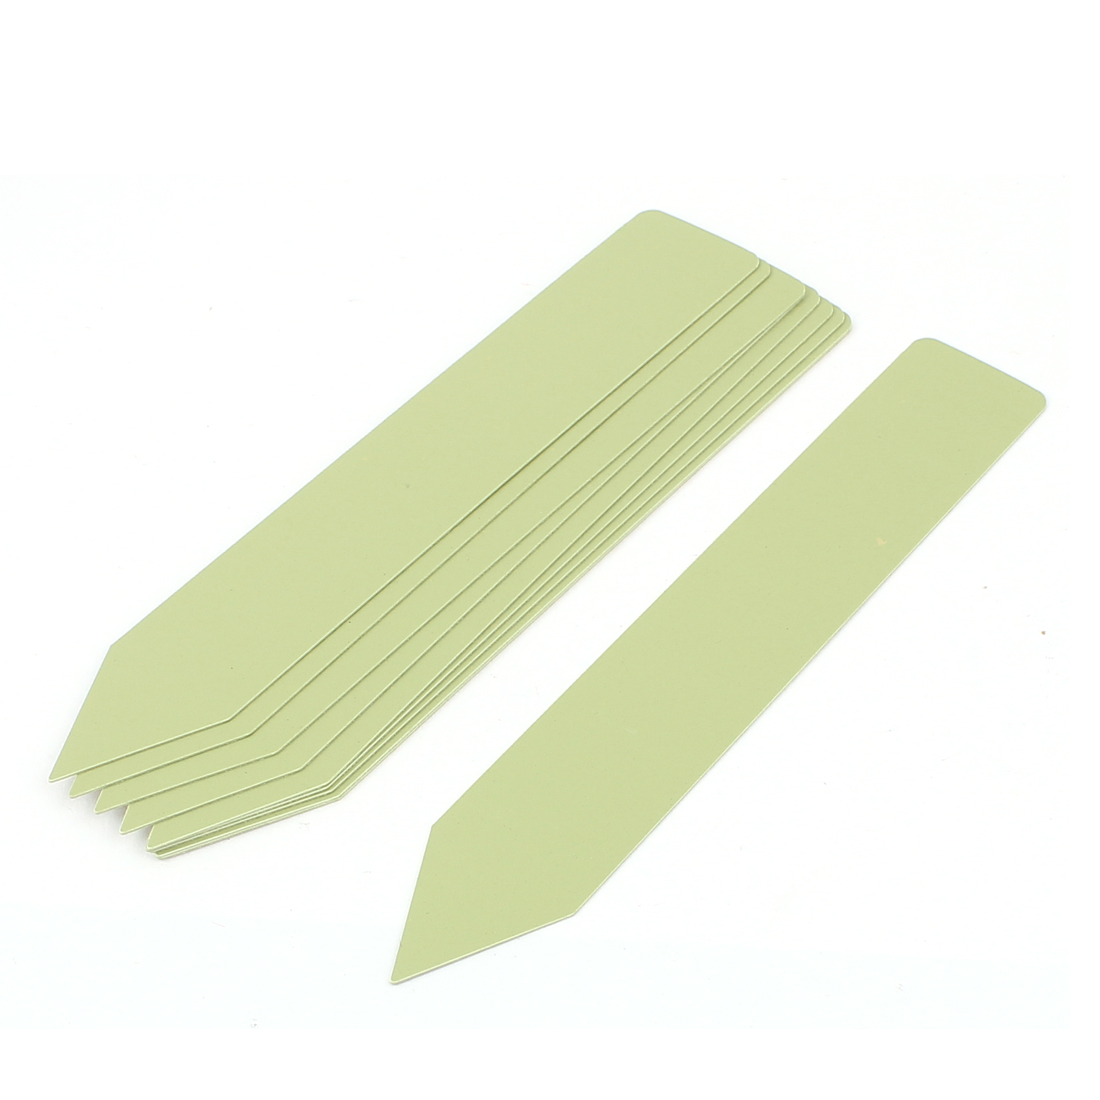 15cmx2.5cm Plastic Nursery Garden Plant Tag Label Marker Stick Light Green 10Pcs